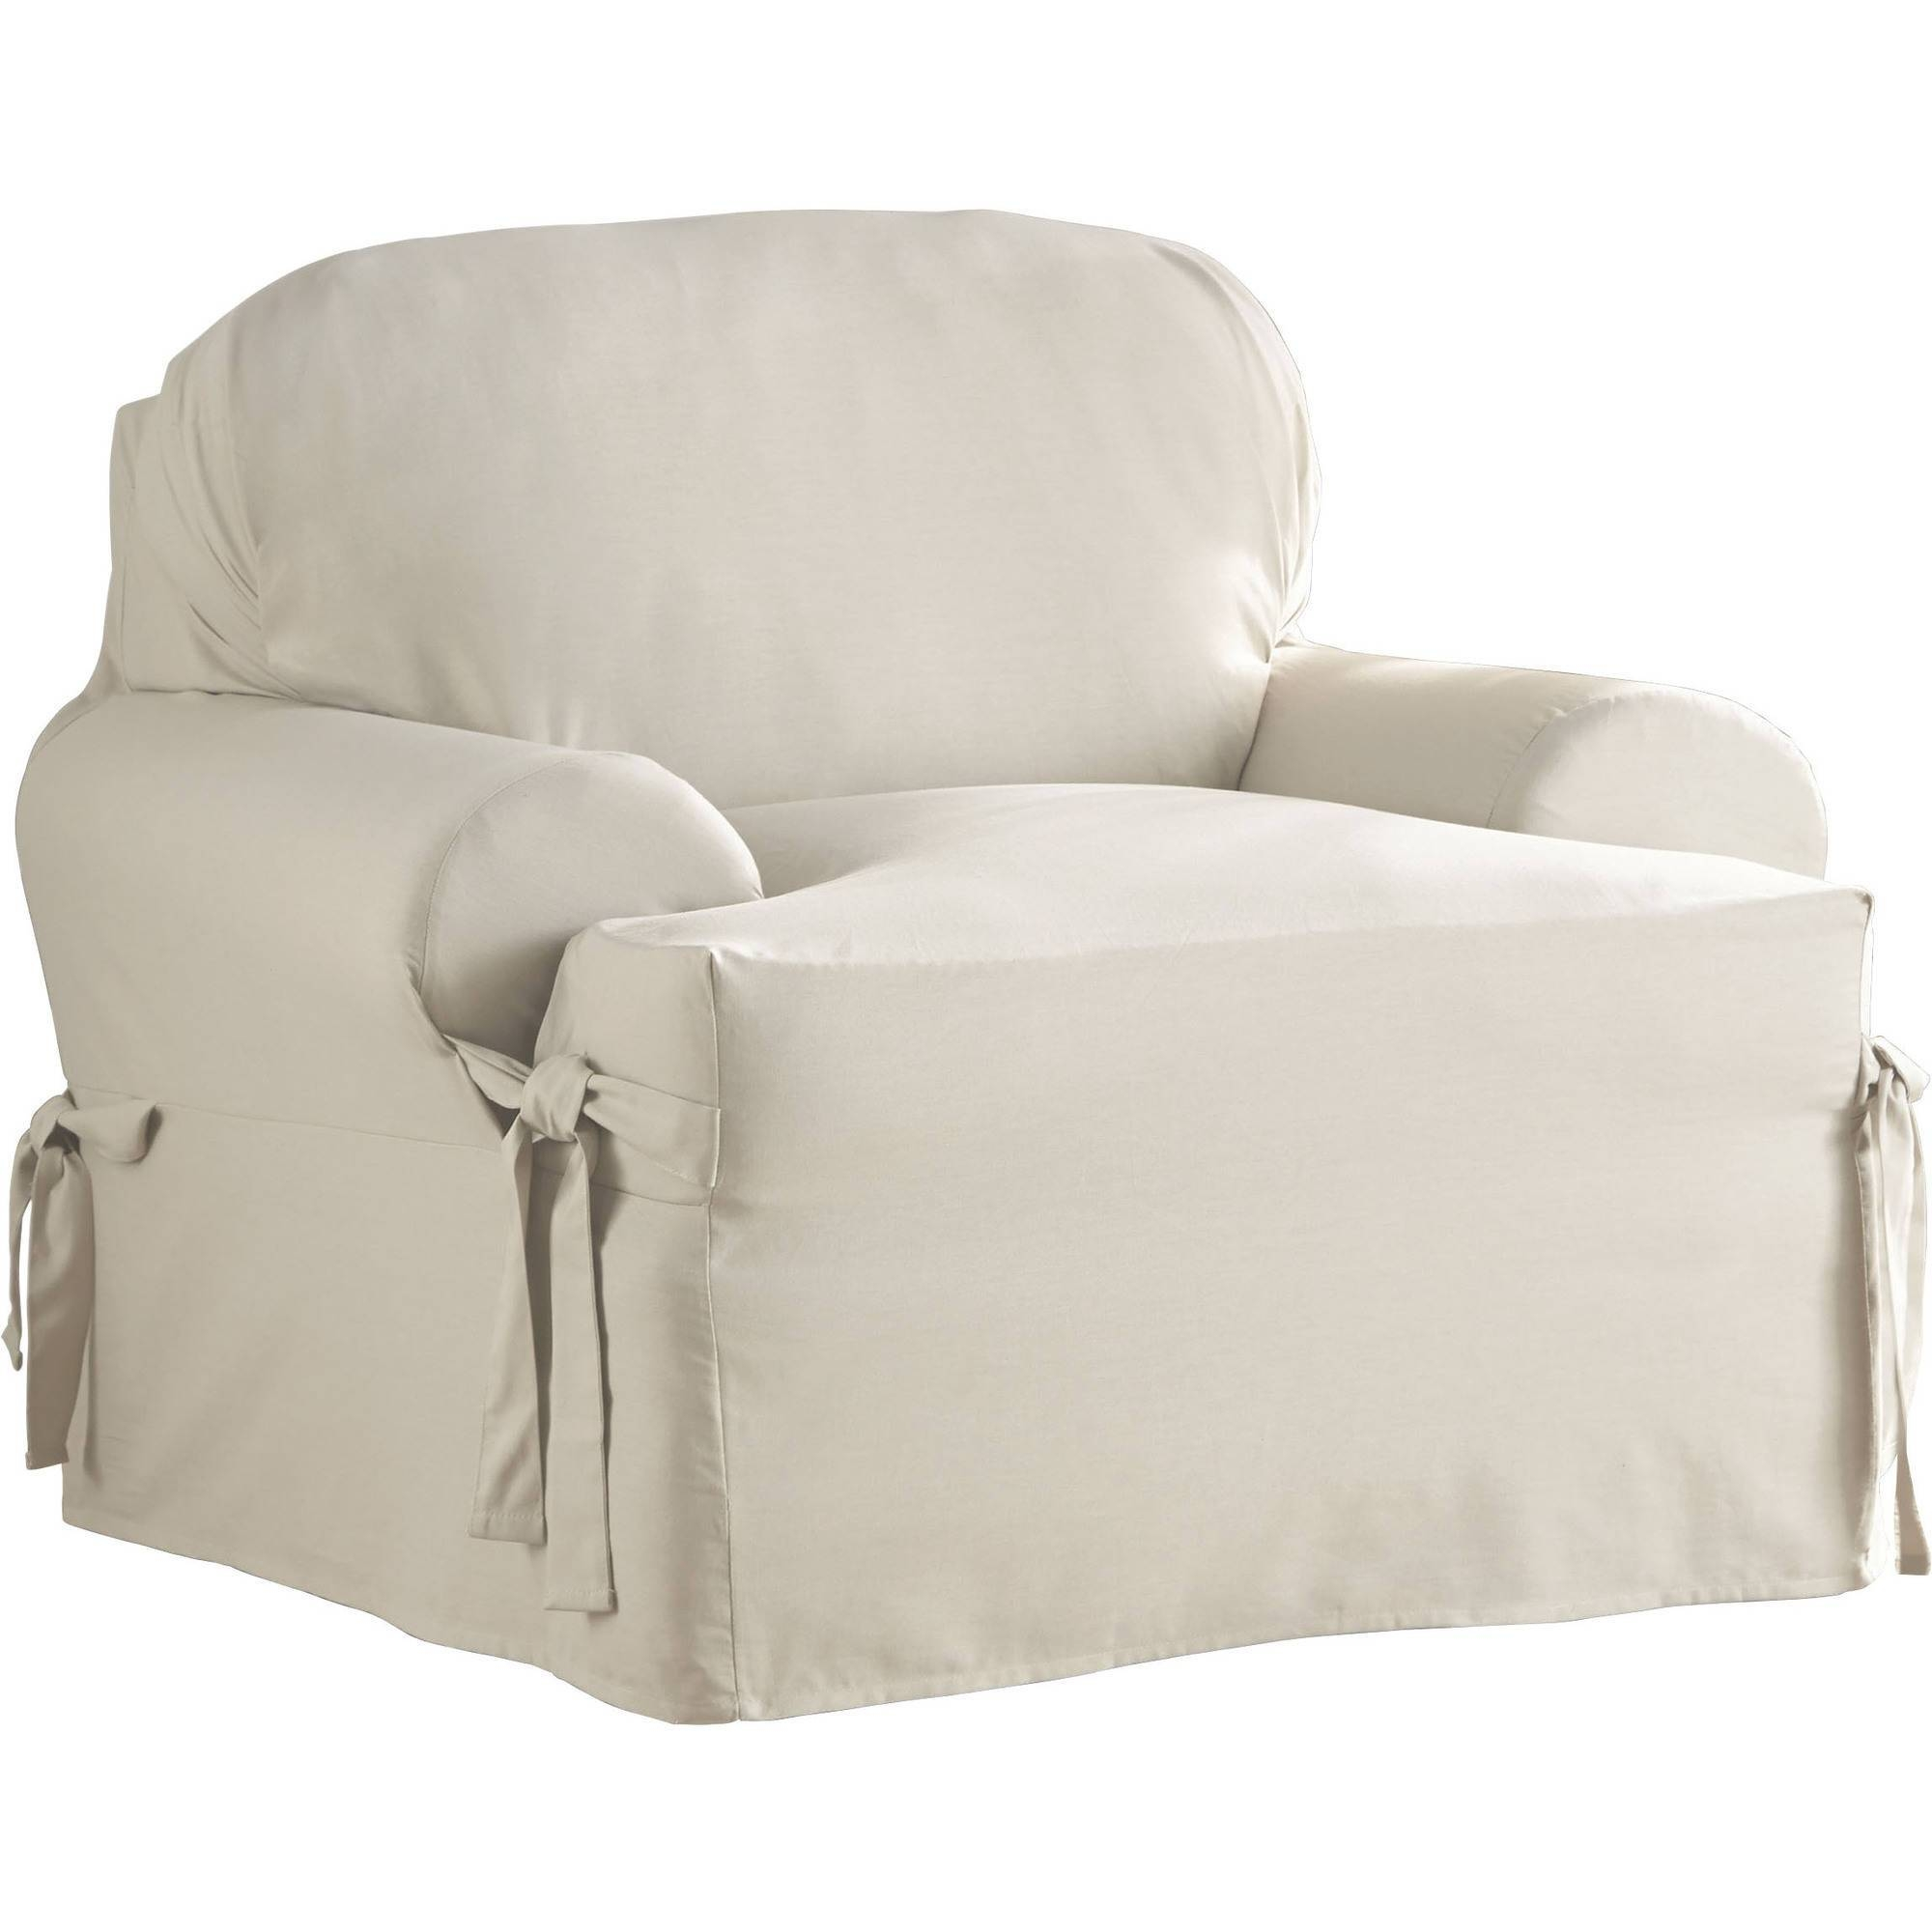 Slipcovers - Walmart for Slip Covers for Love Seats (Image 11 of 15)